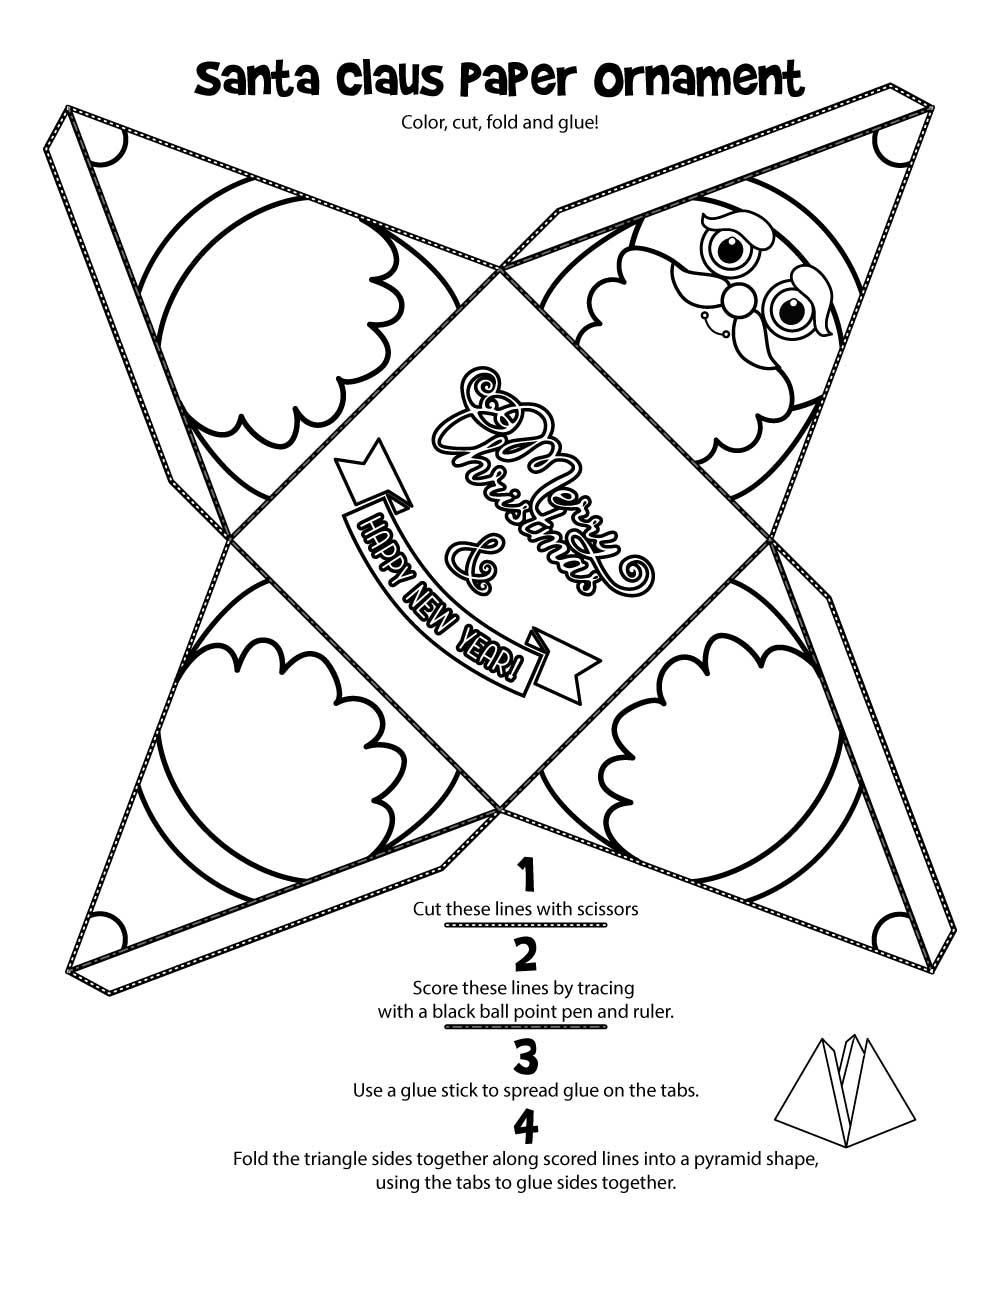 Santa Claus Christmas Ornament Printable - Woo! Jr. Kids Activities